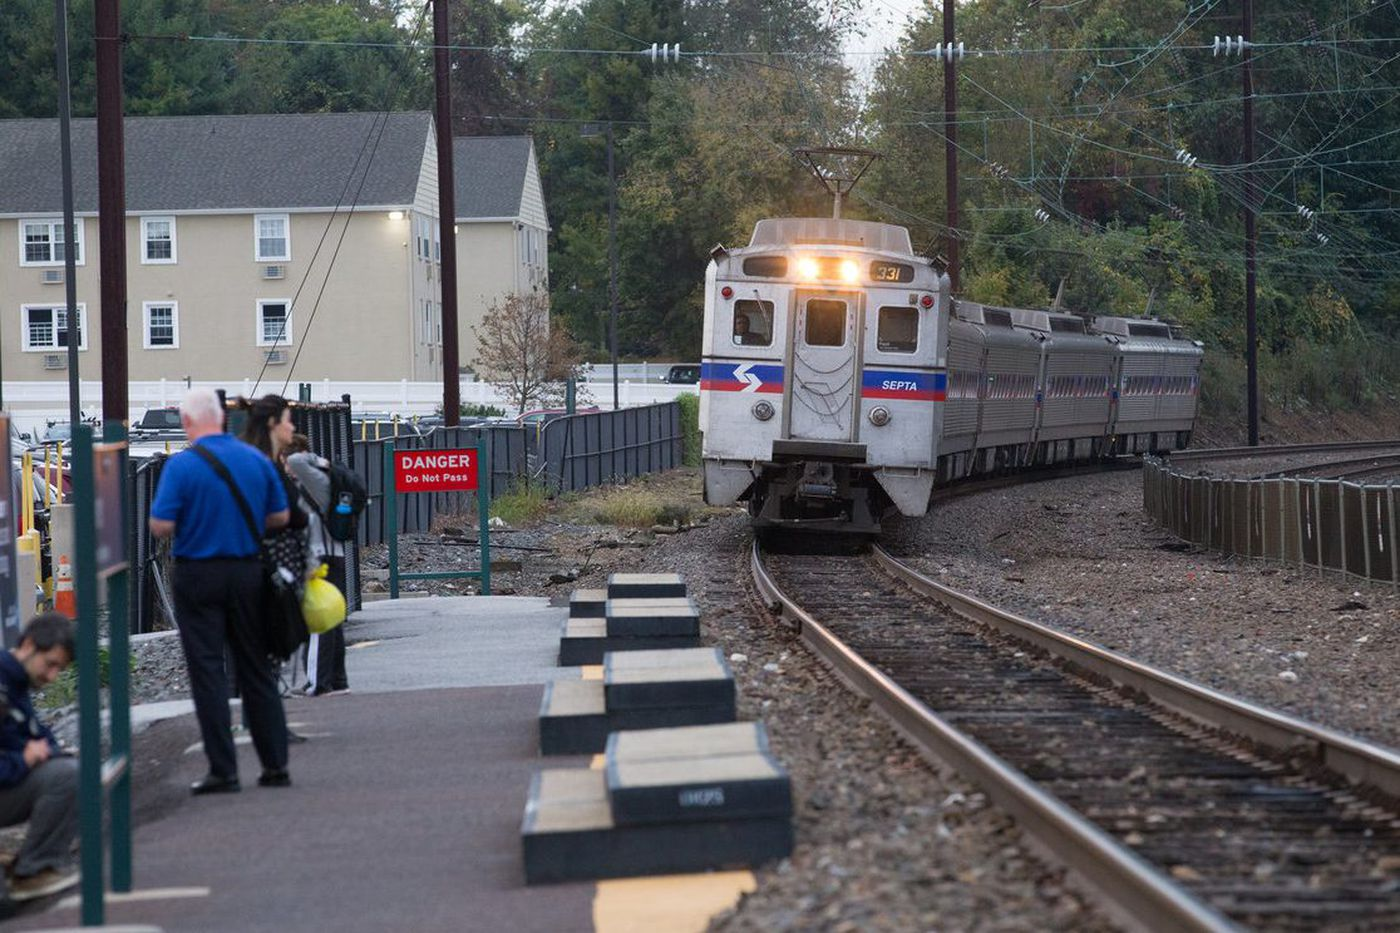 SEPTA Regional Rail service resumes after train fire